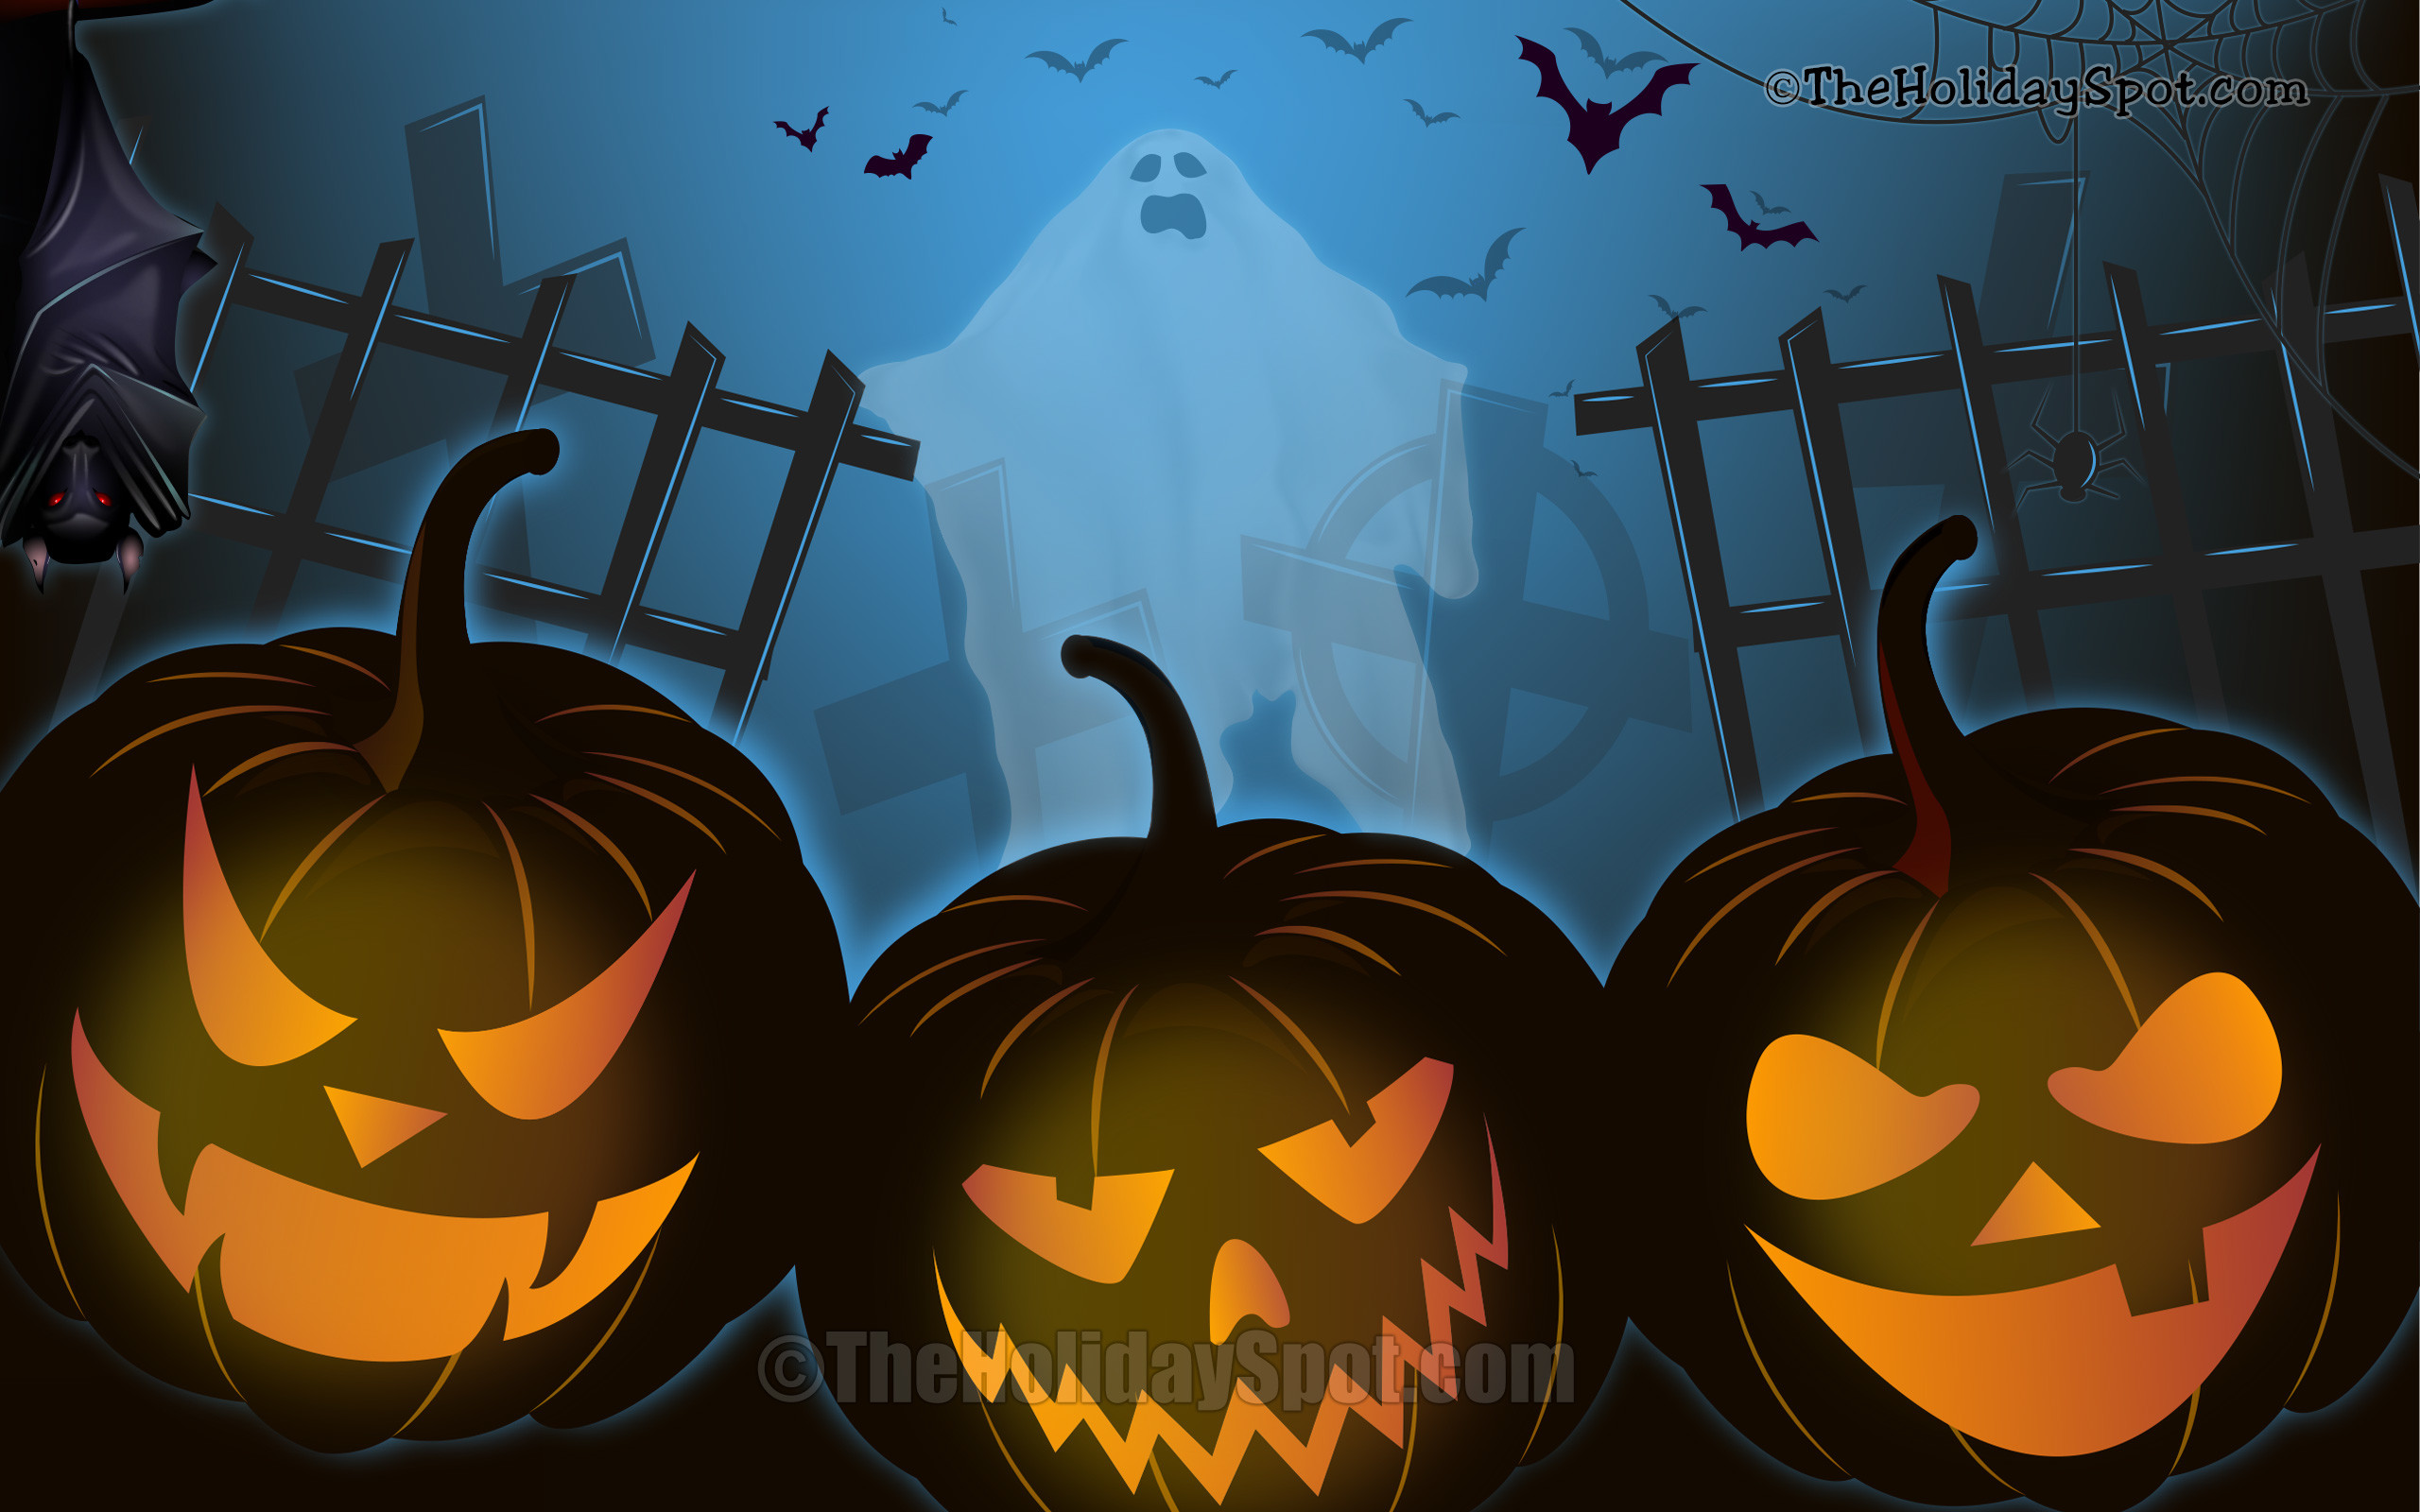 Halloween Desktop Wallpaper Screens 62 images 2560x1600